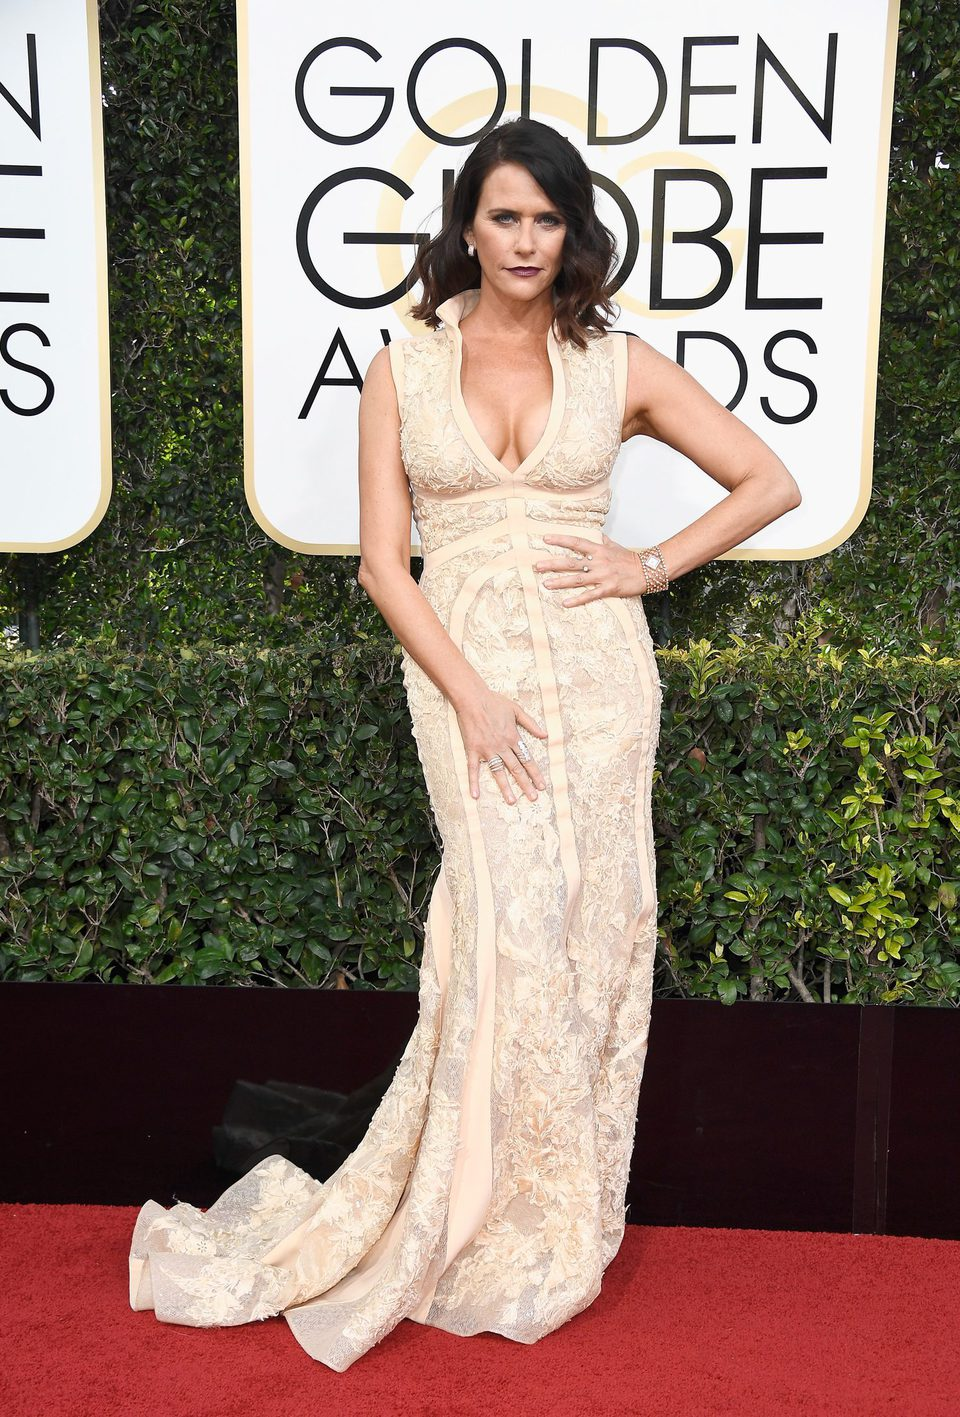 Amy Landecker at Golden Globes 2017 red carpet